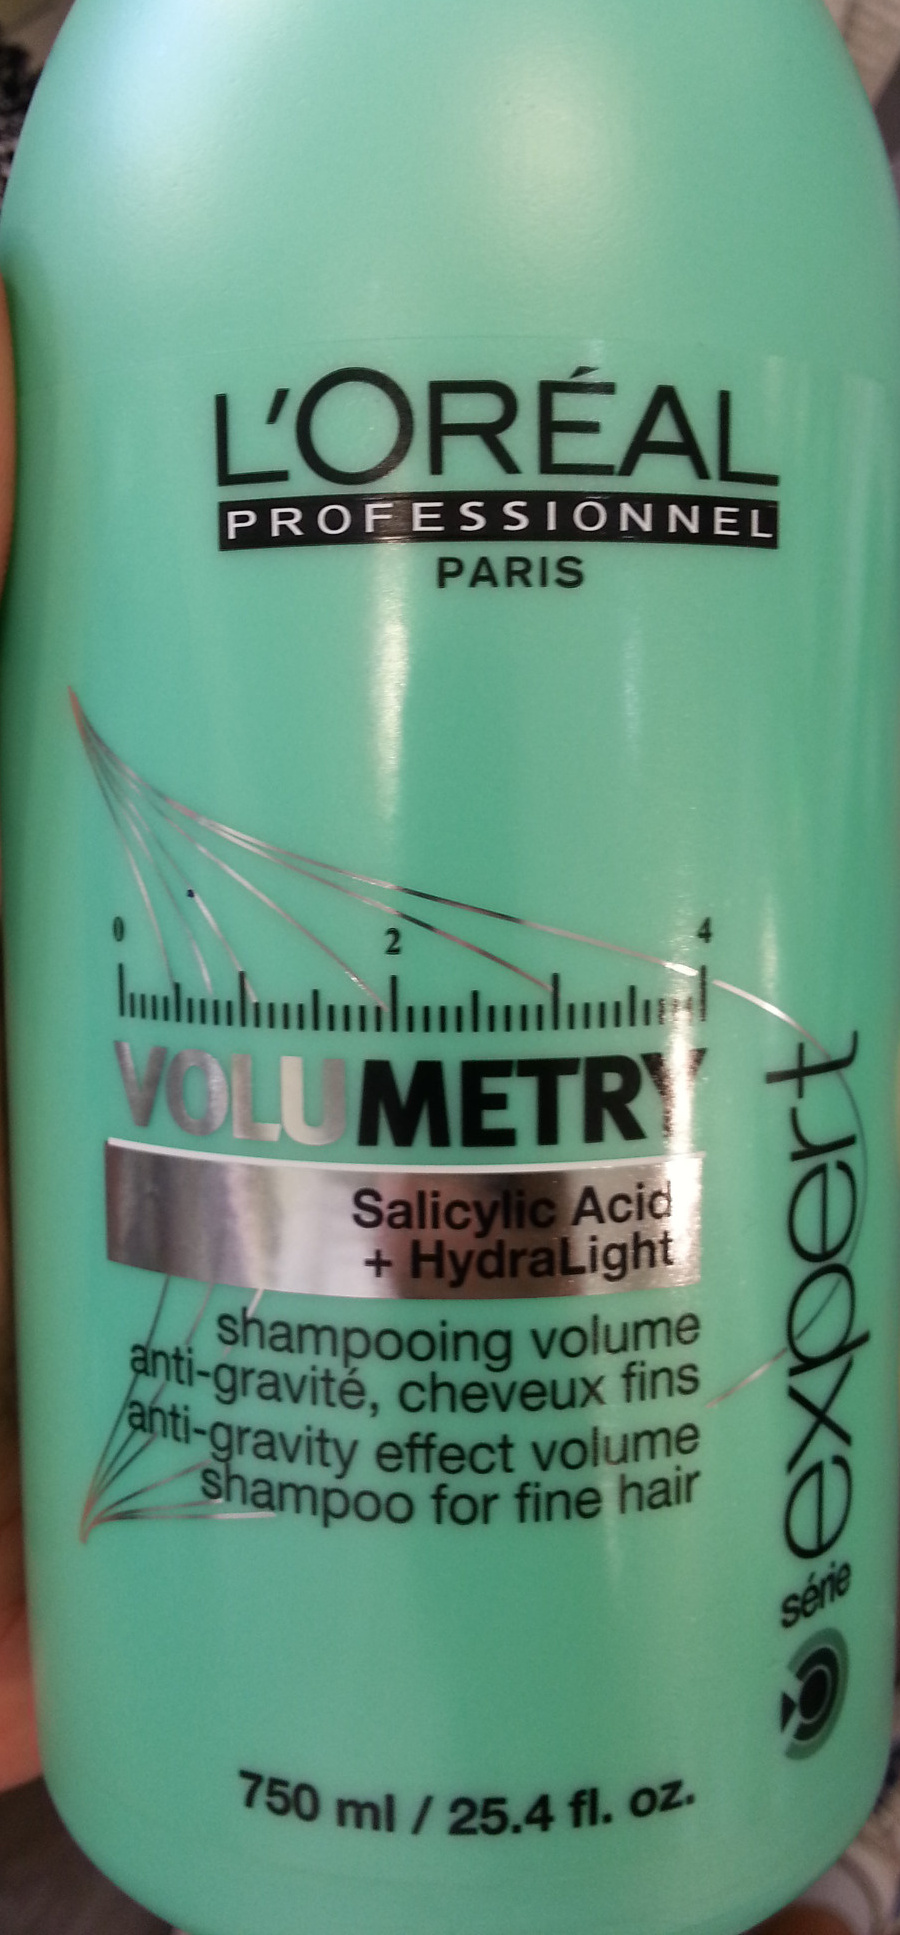 Volumetry Shampoo - Produit - fr